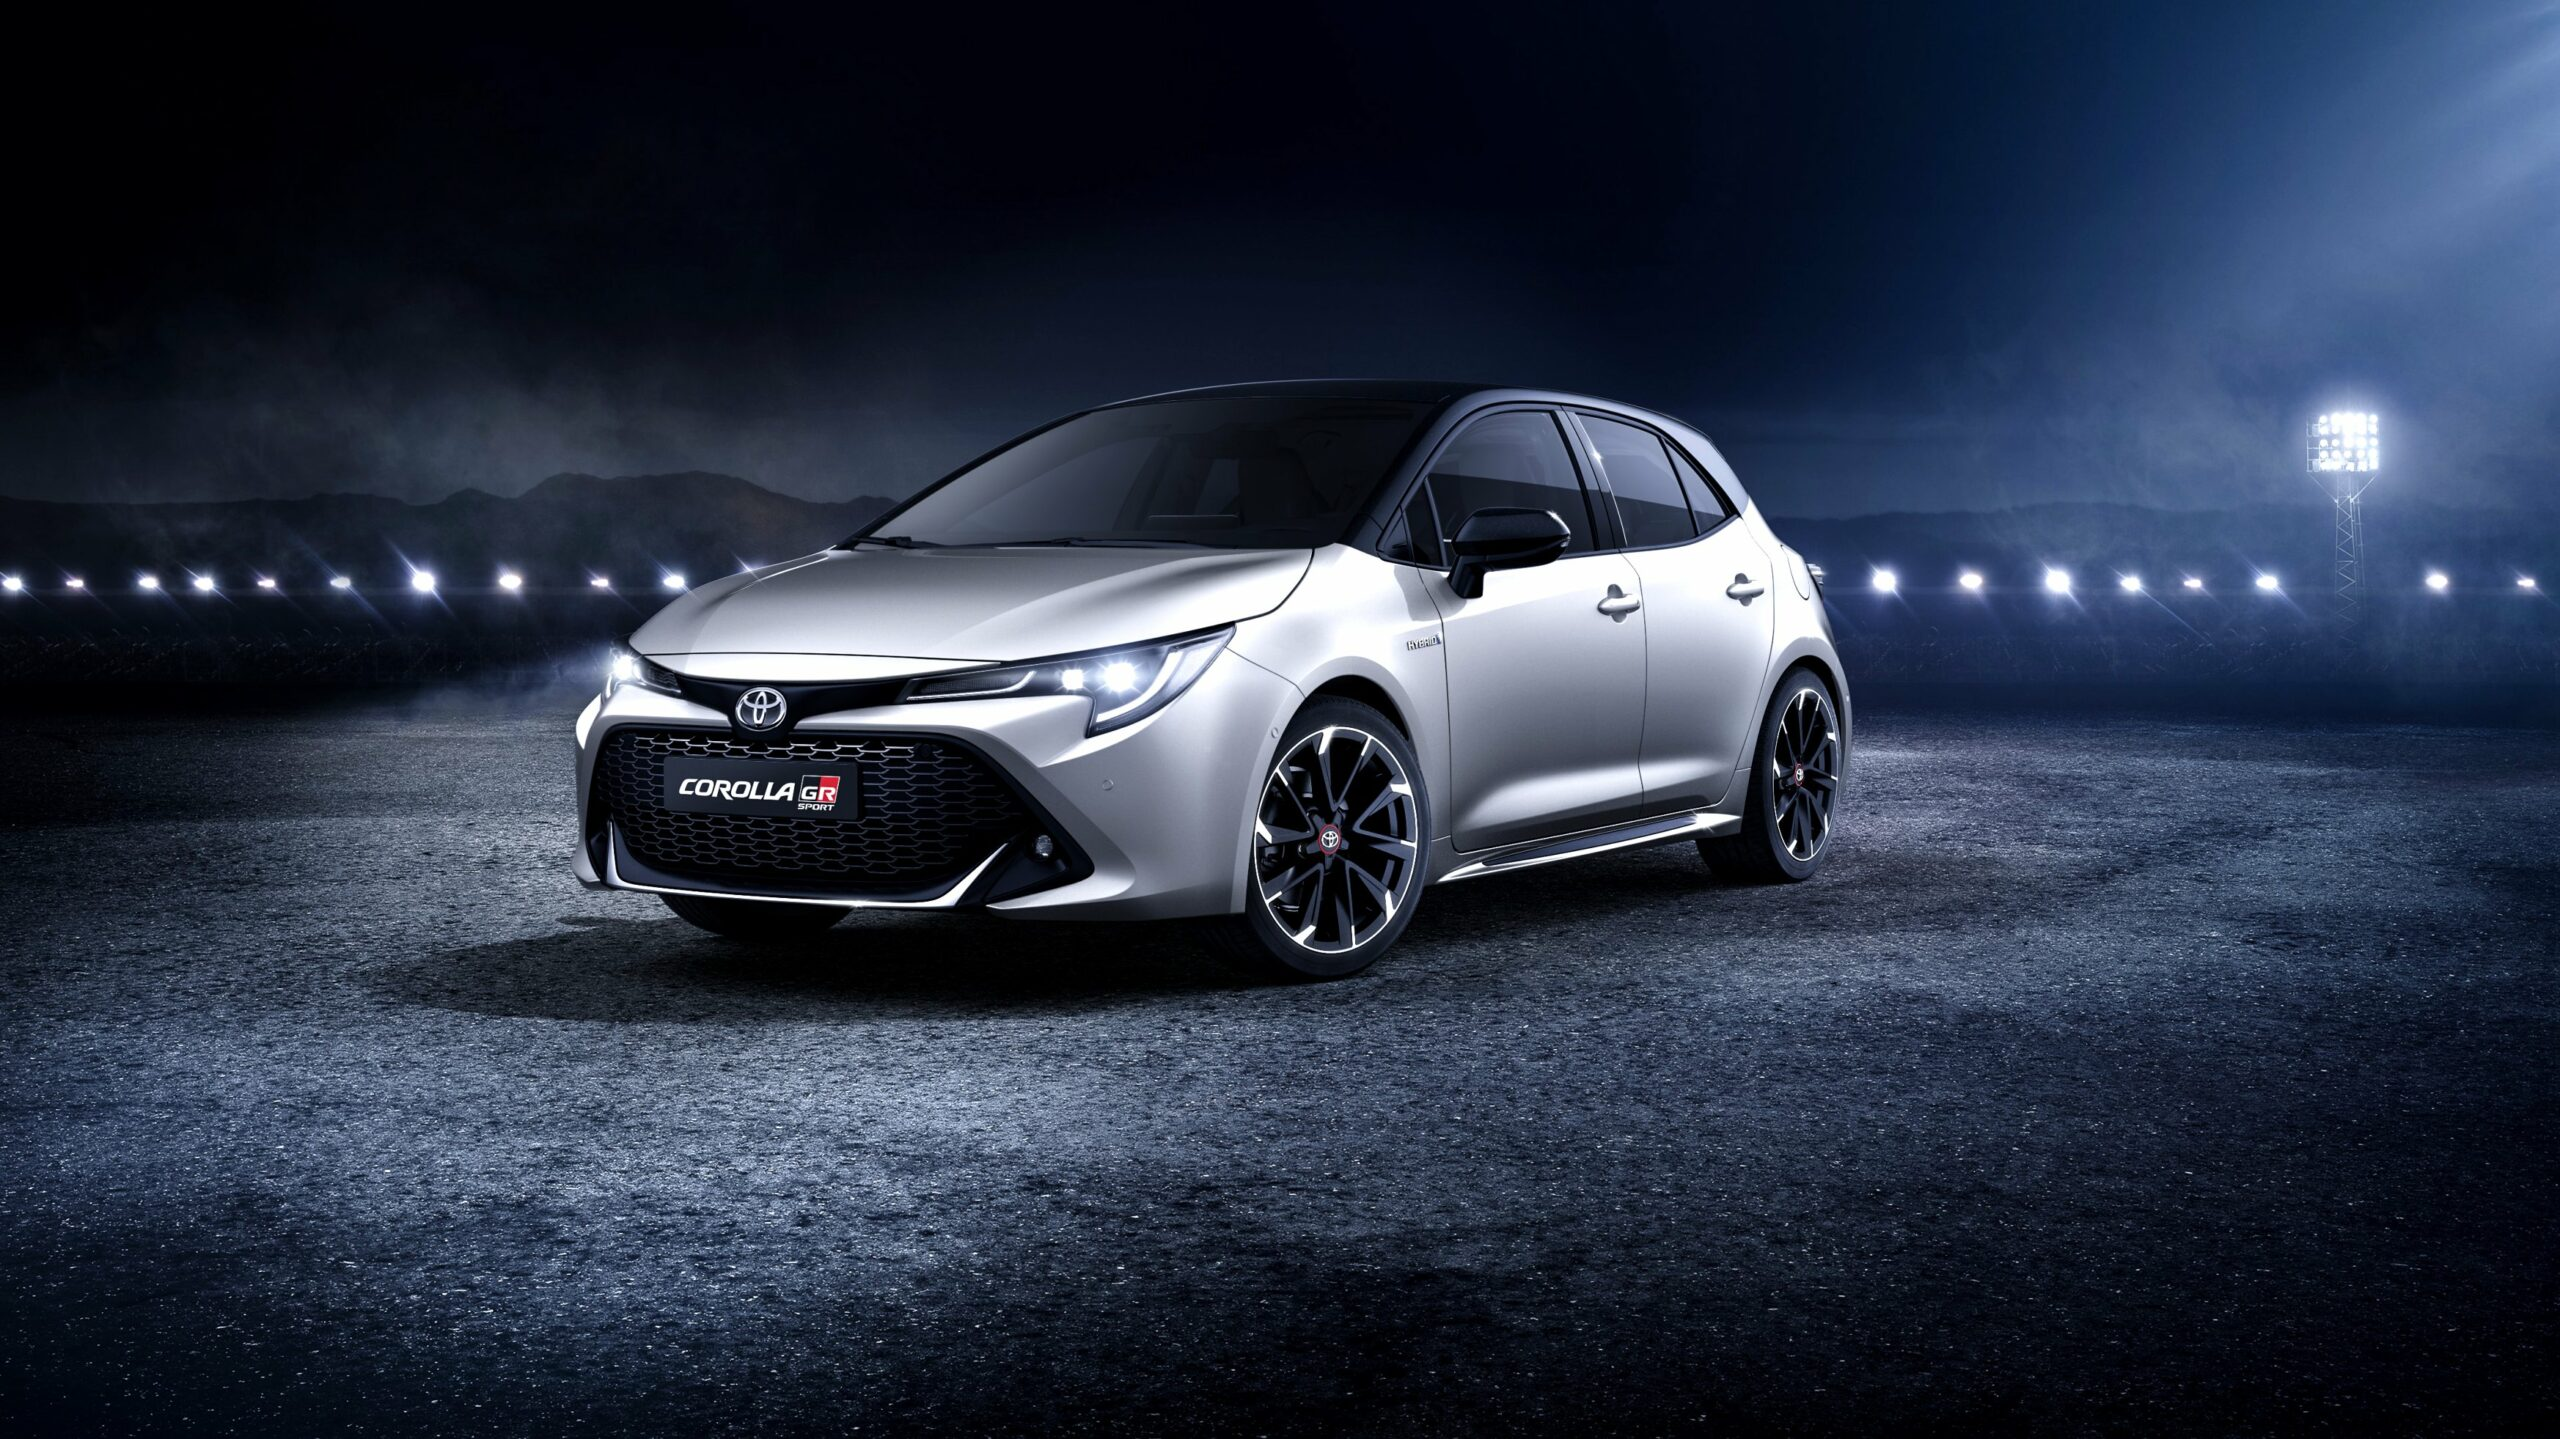 toyota corolla hatchback 2020 Specs and Review